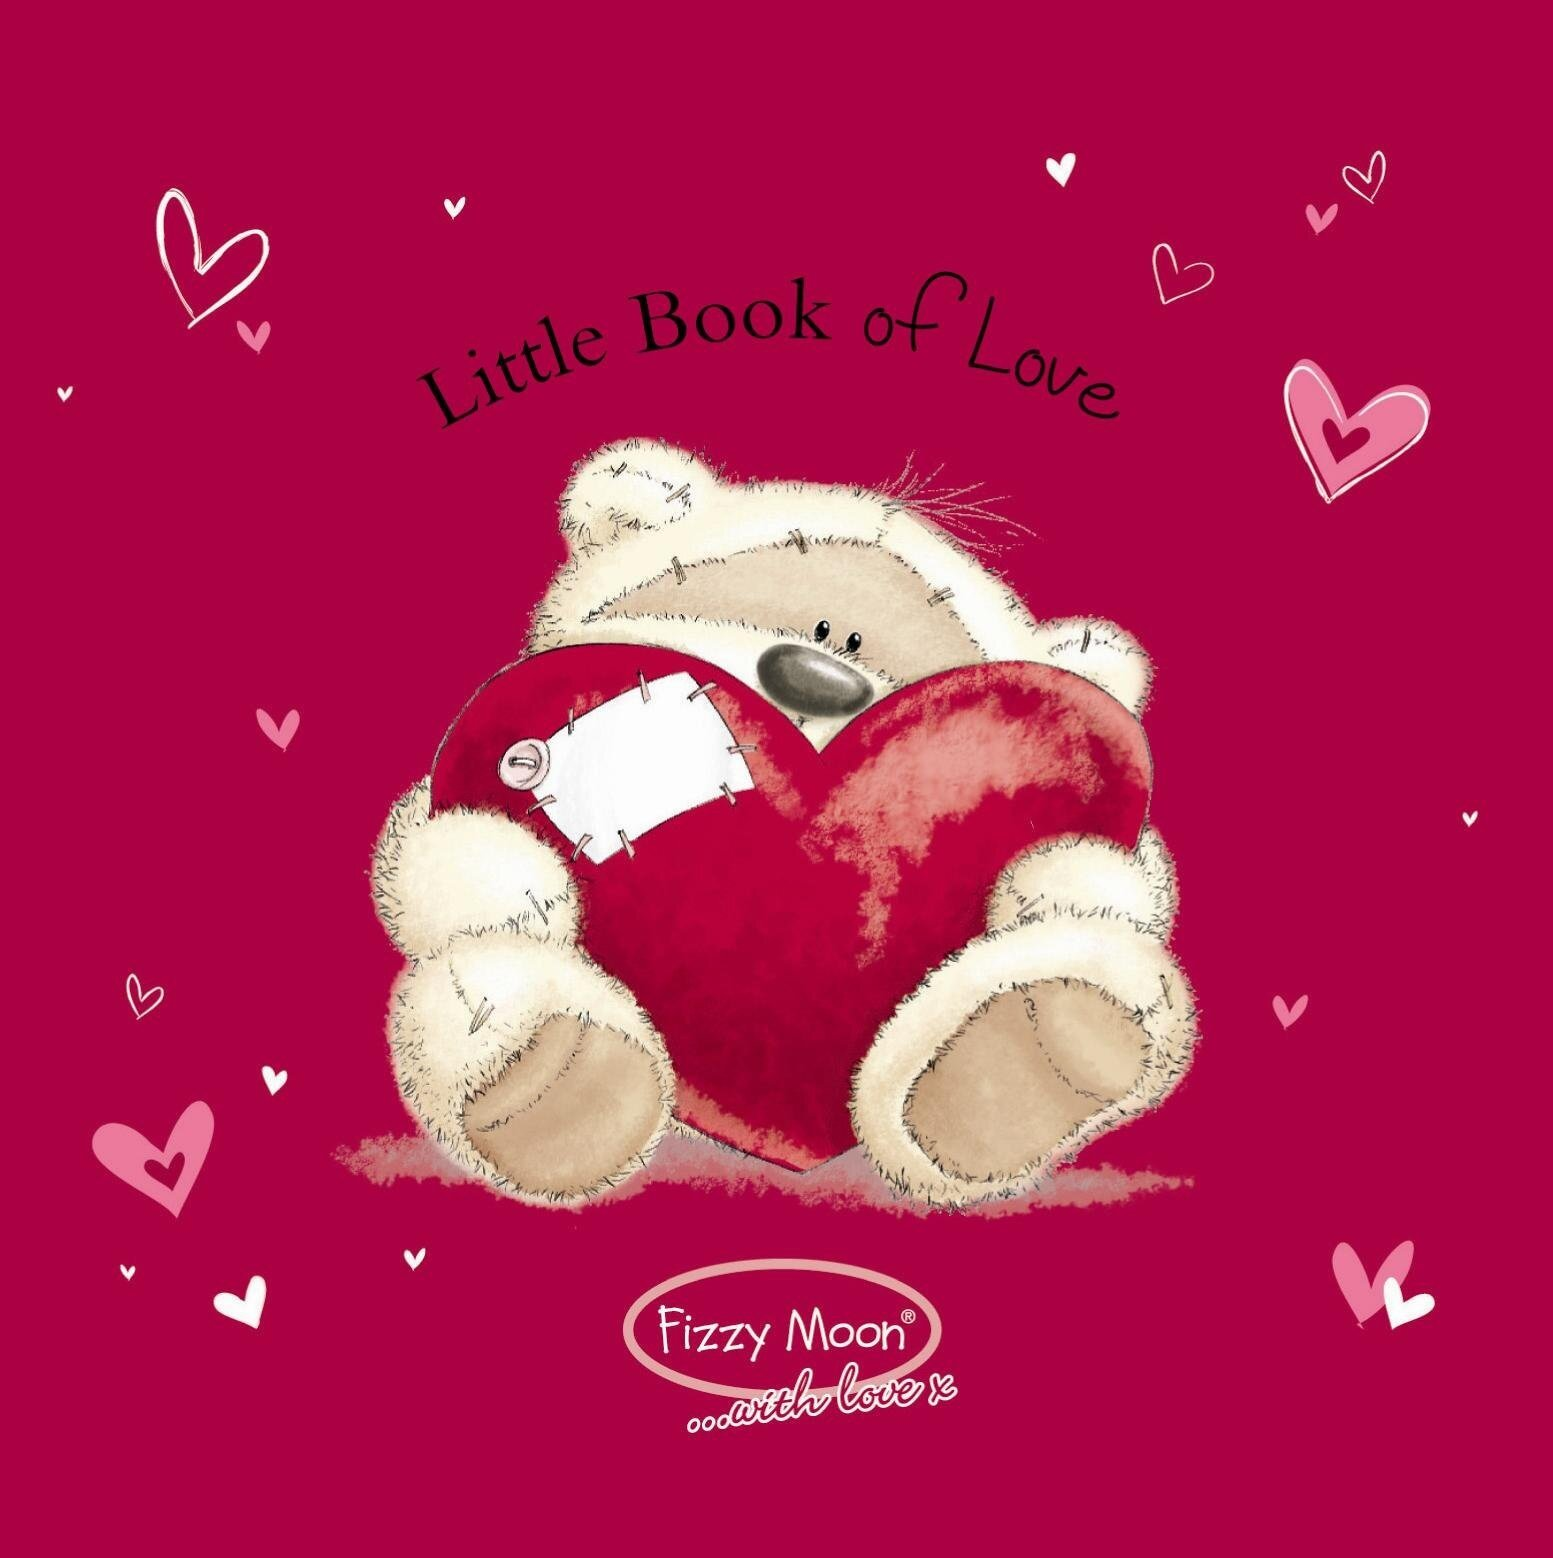 Fizzy Moon Little Book of Love